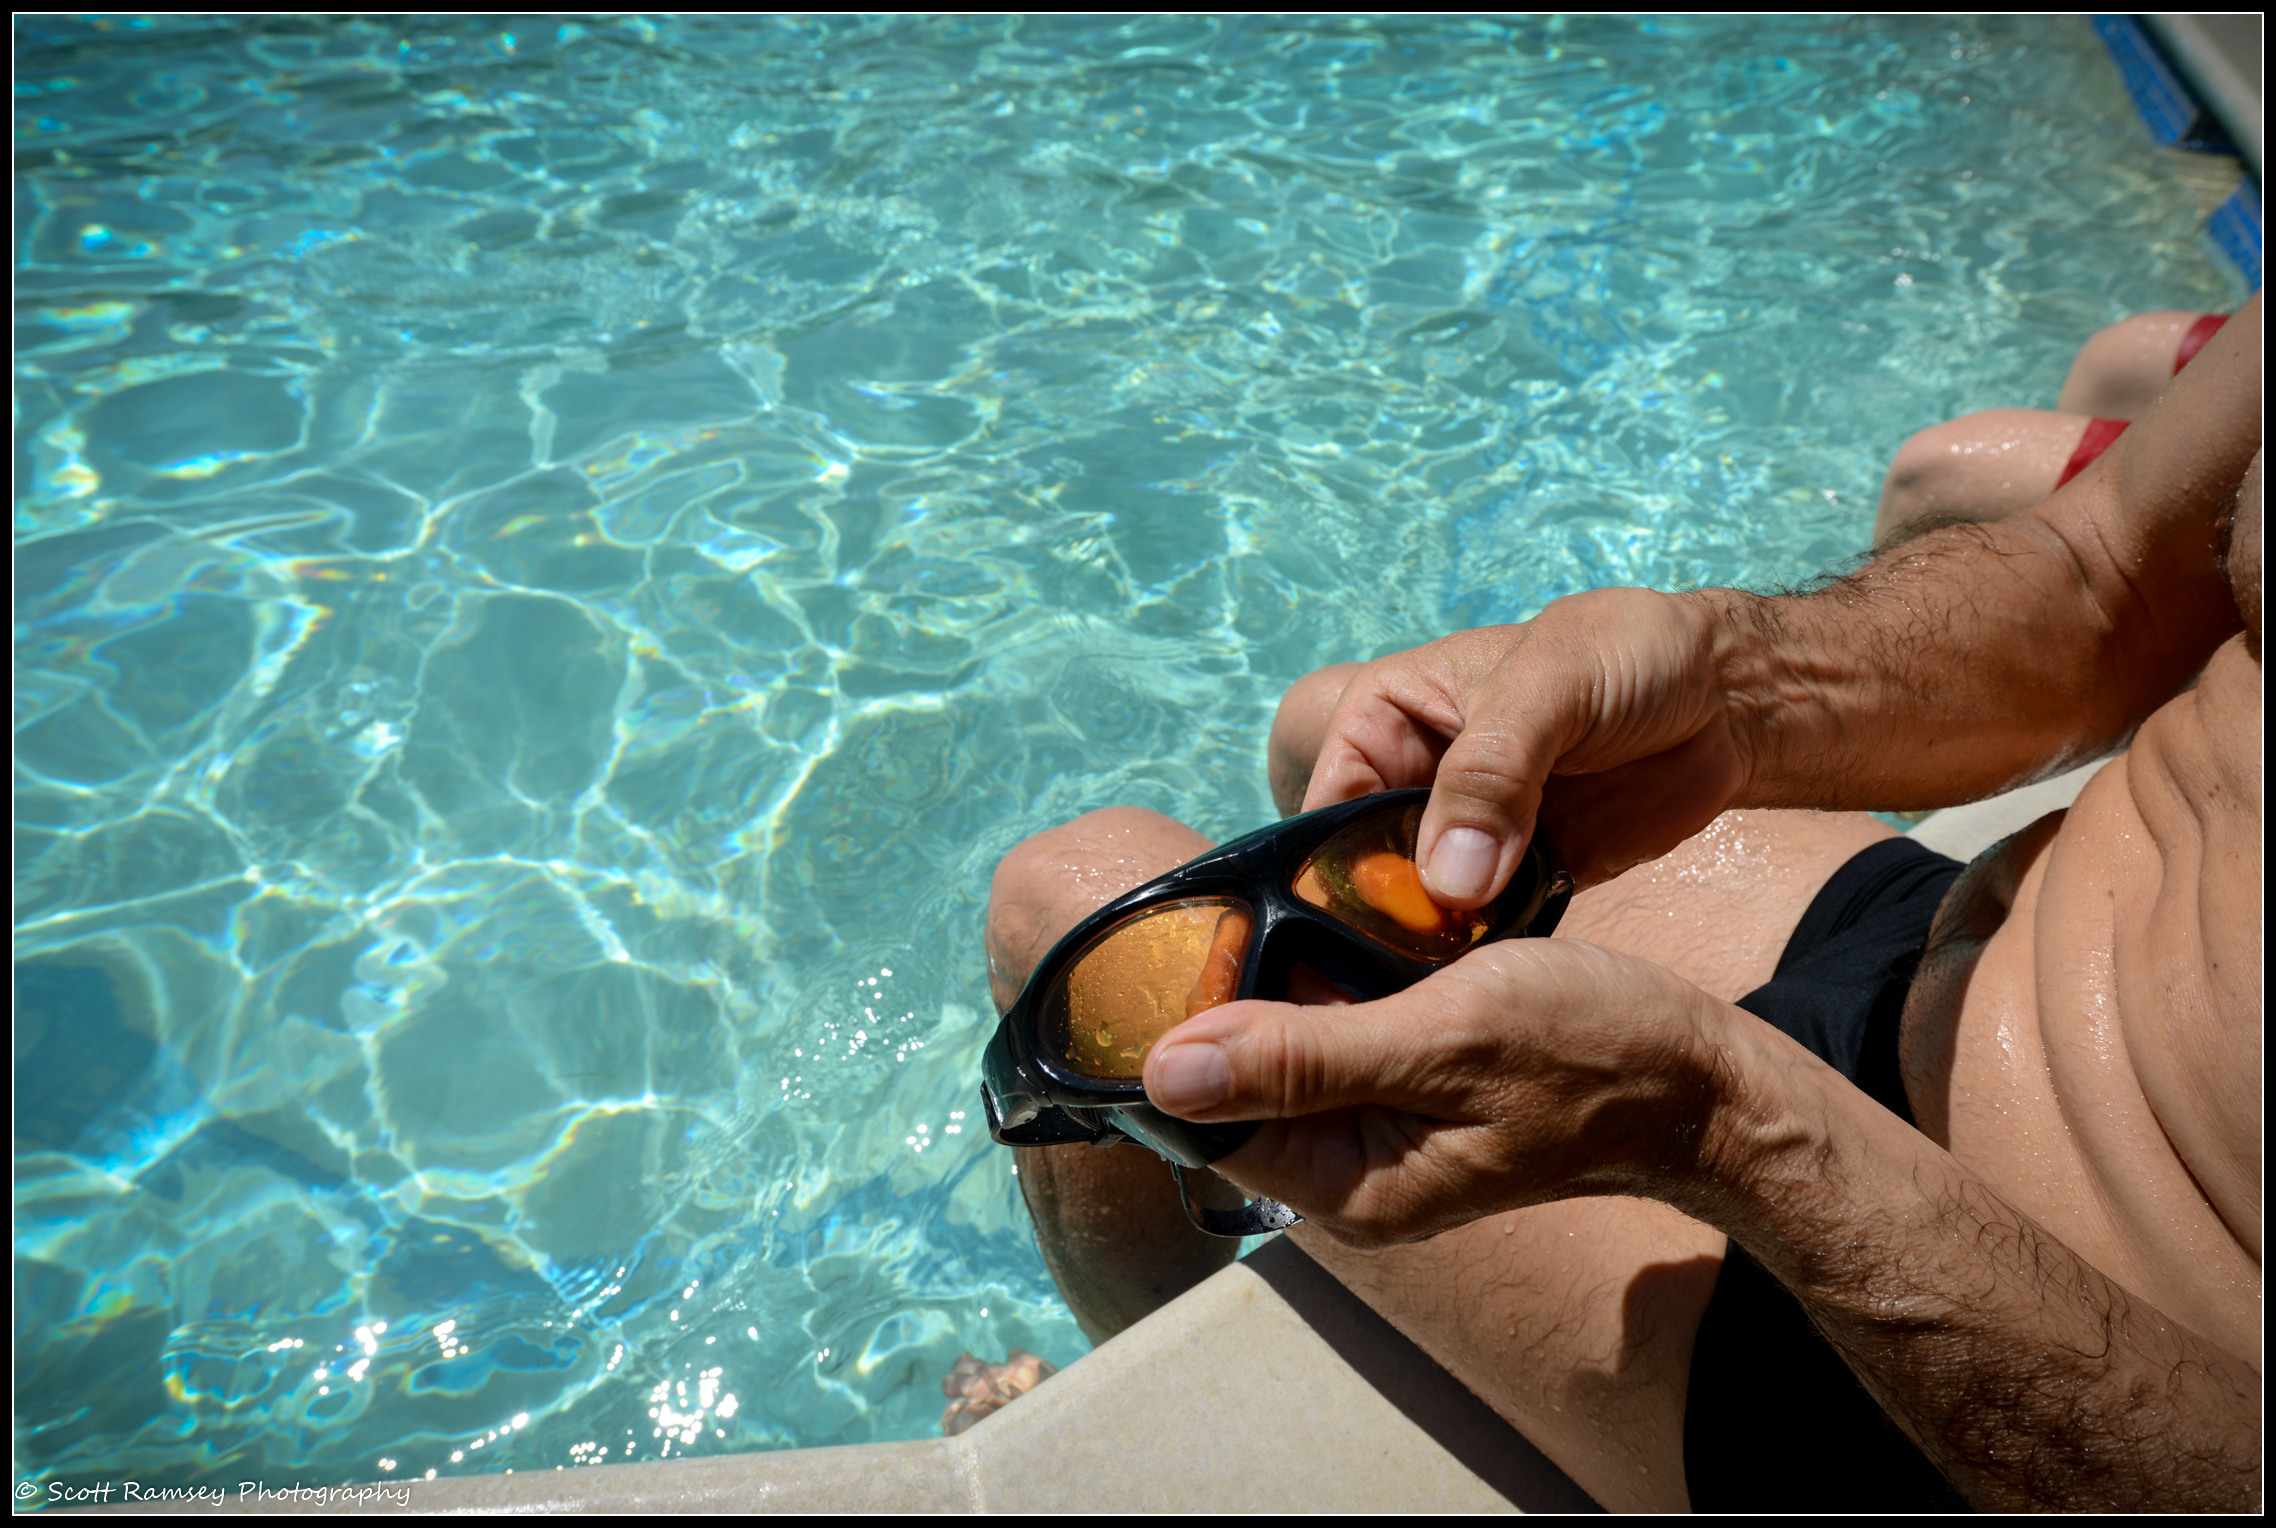 Tristan ,who has been swimming at the pool for 7 years, cleans his swimming goggles before his swim at Pells Pool in Lewes © Scott Ramsey Photography